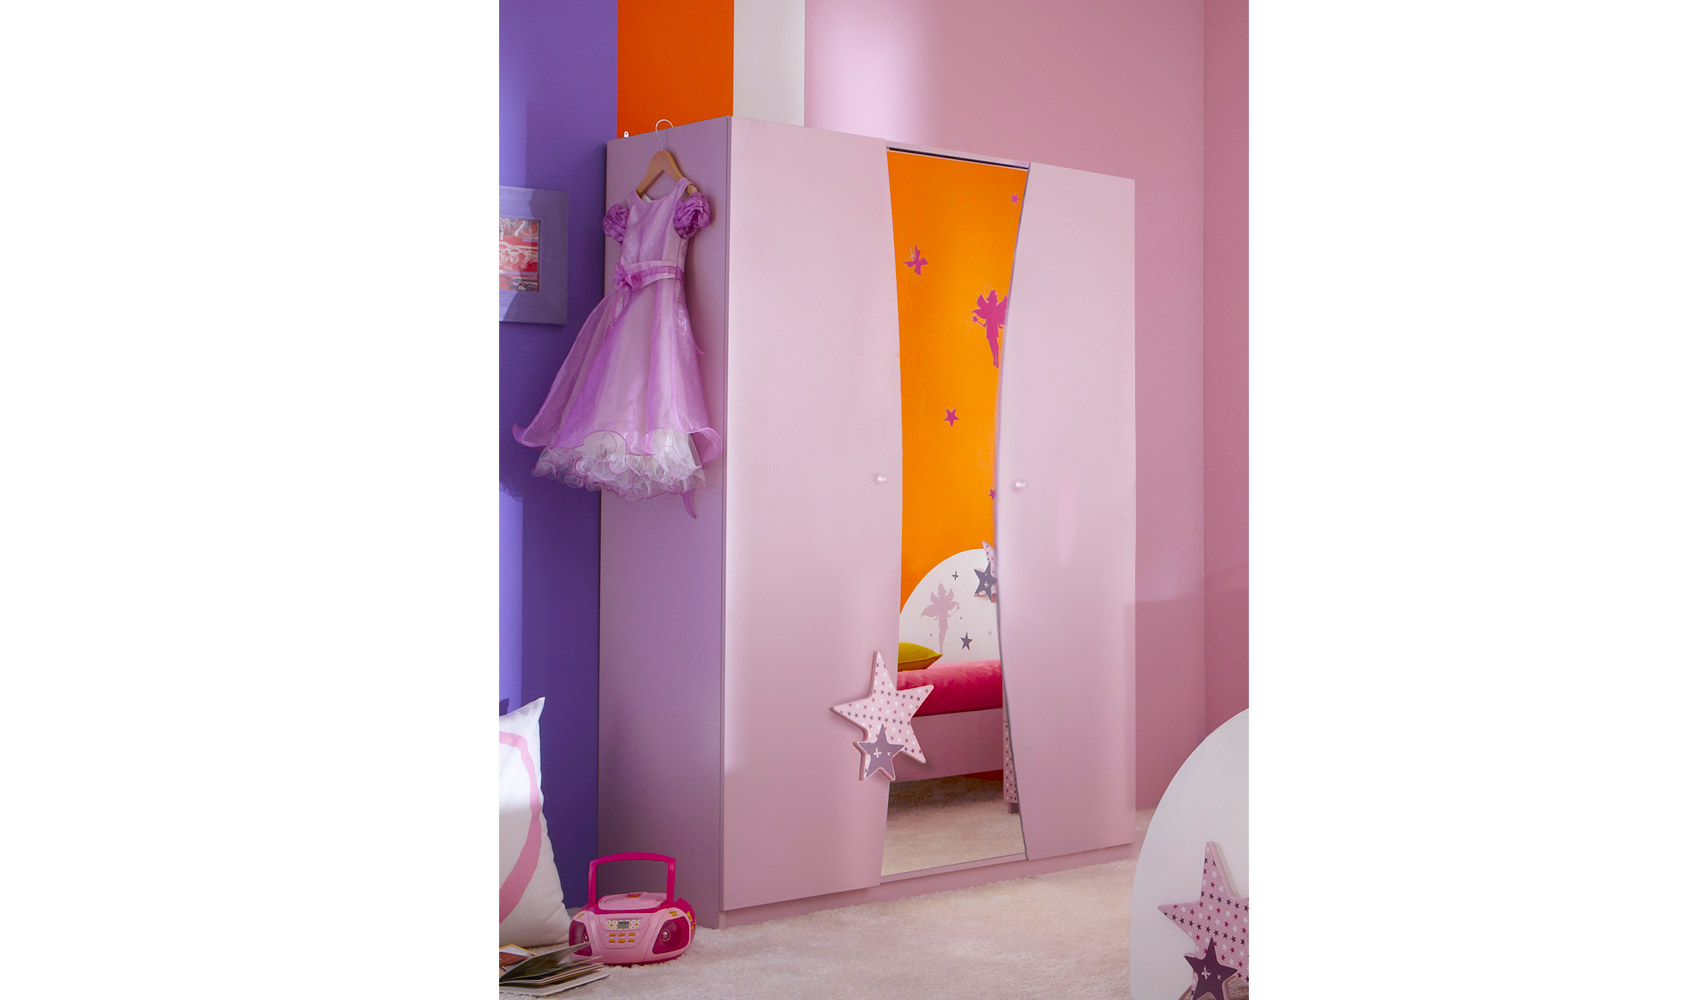 kleiderschrank prinzessin m dchenschrank schrank kinderzimmer lila 3 t rig ebay. Black Bedroom Furniture Sets. Home Design Ideas